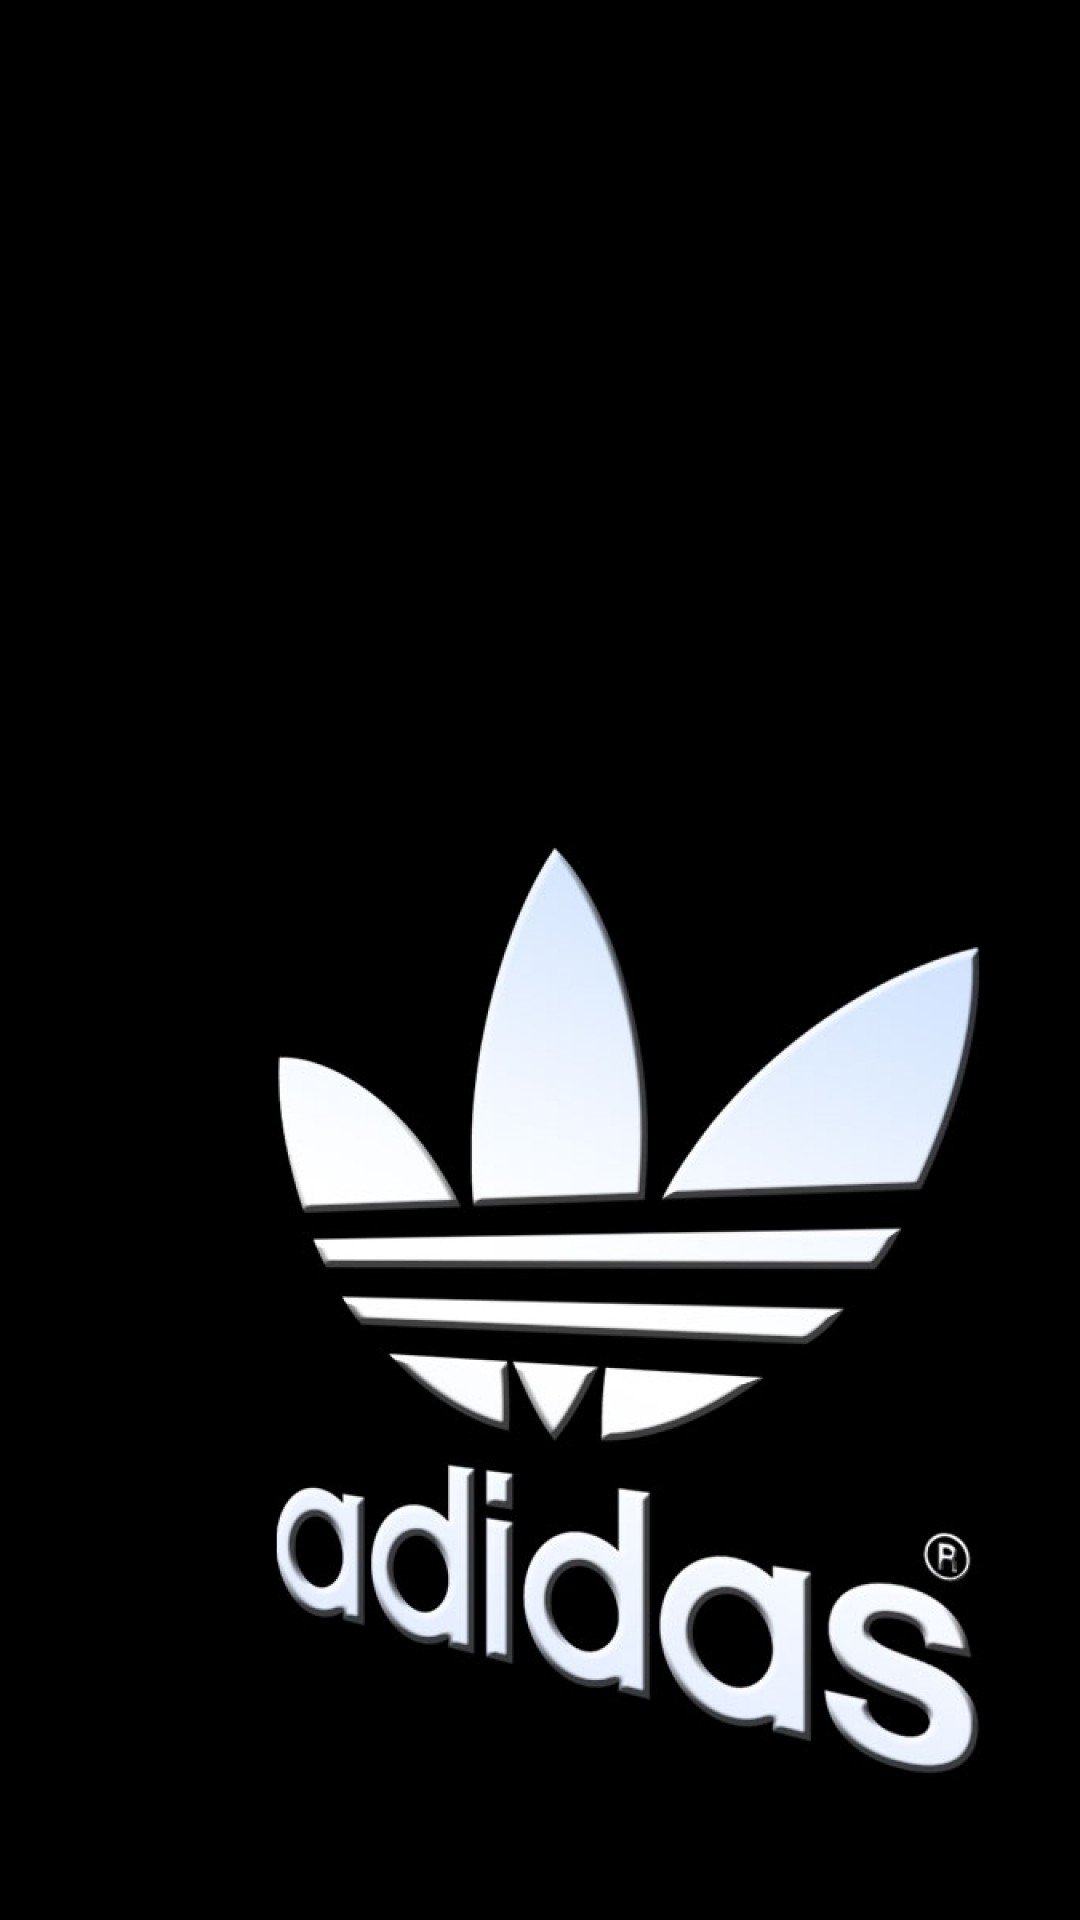 Adidas Wallpapers 75 Background Pictures